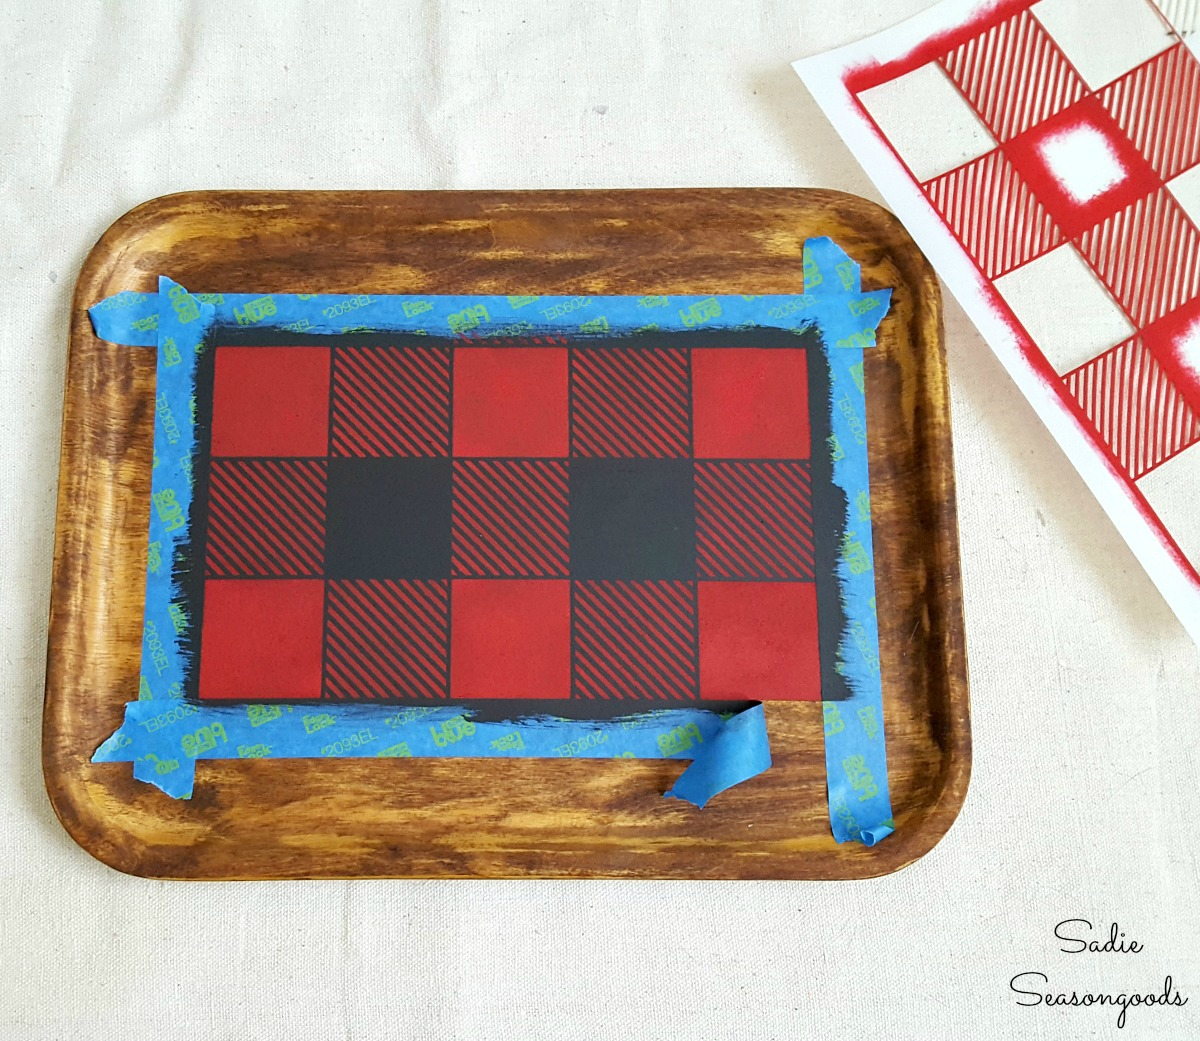 Using a Buffalo check stencil or Buffalo plaid stencil on a wooden tray to create the rustic cabin decor